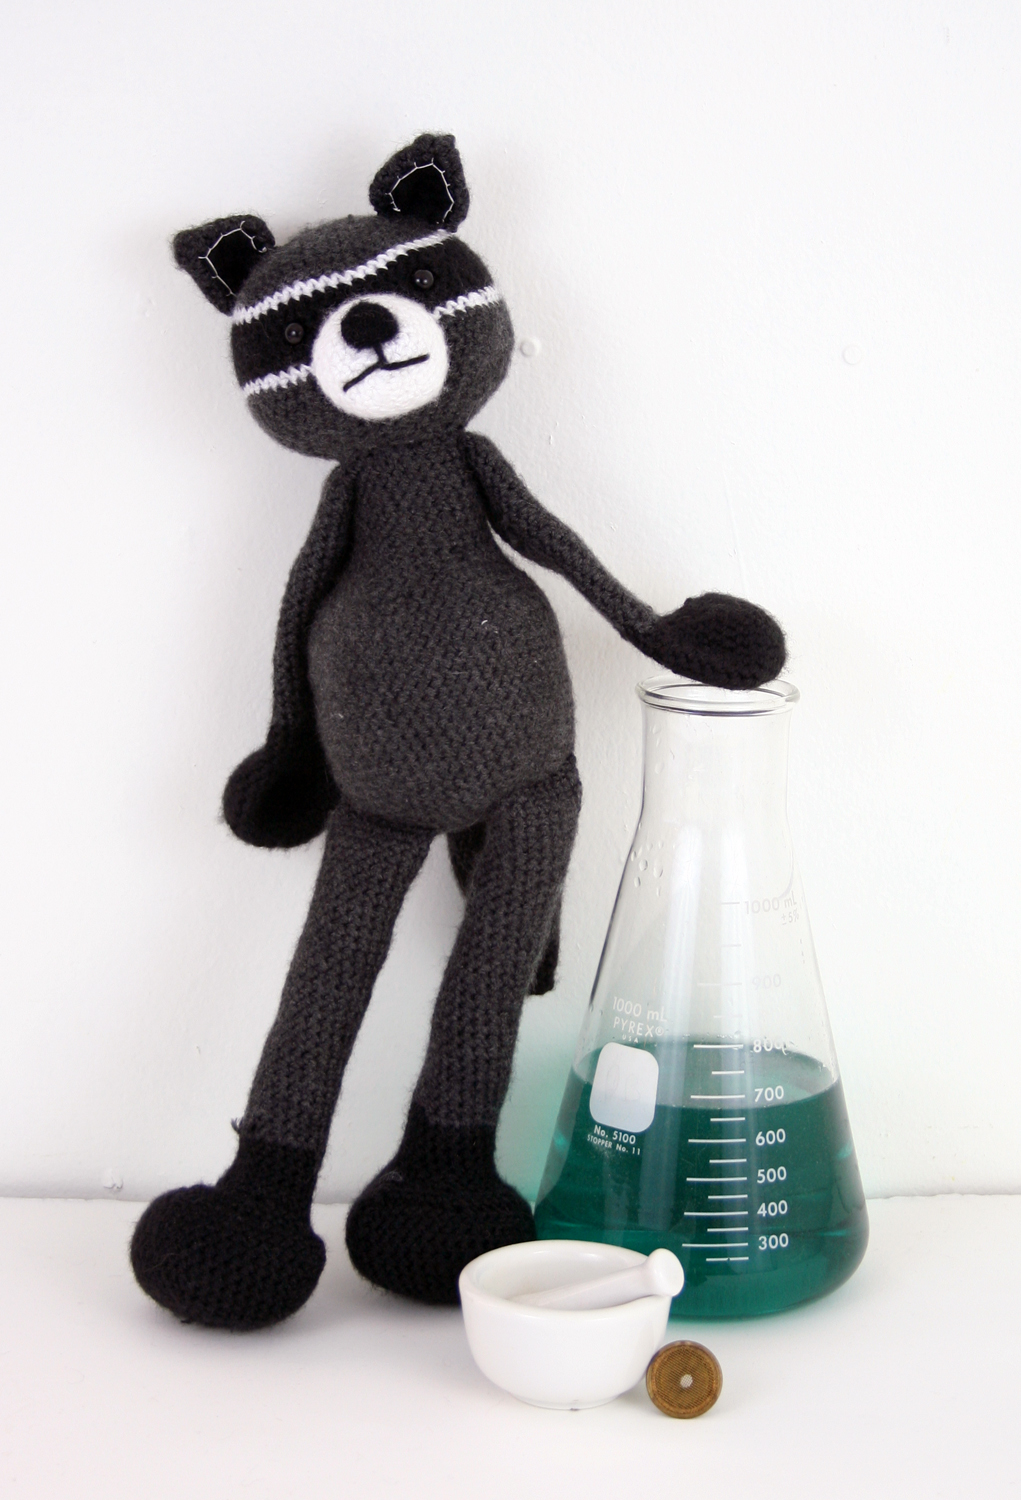 didn't you know? most raccoons dream of being chemists.